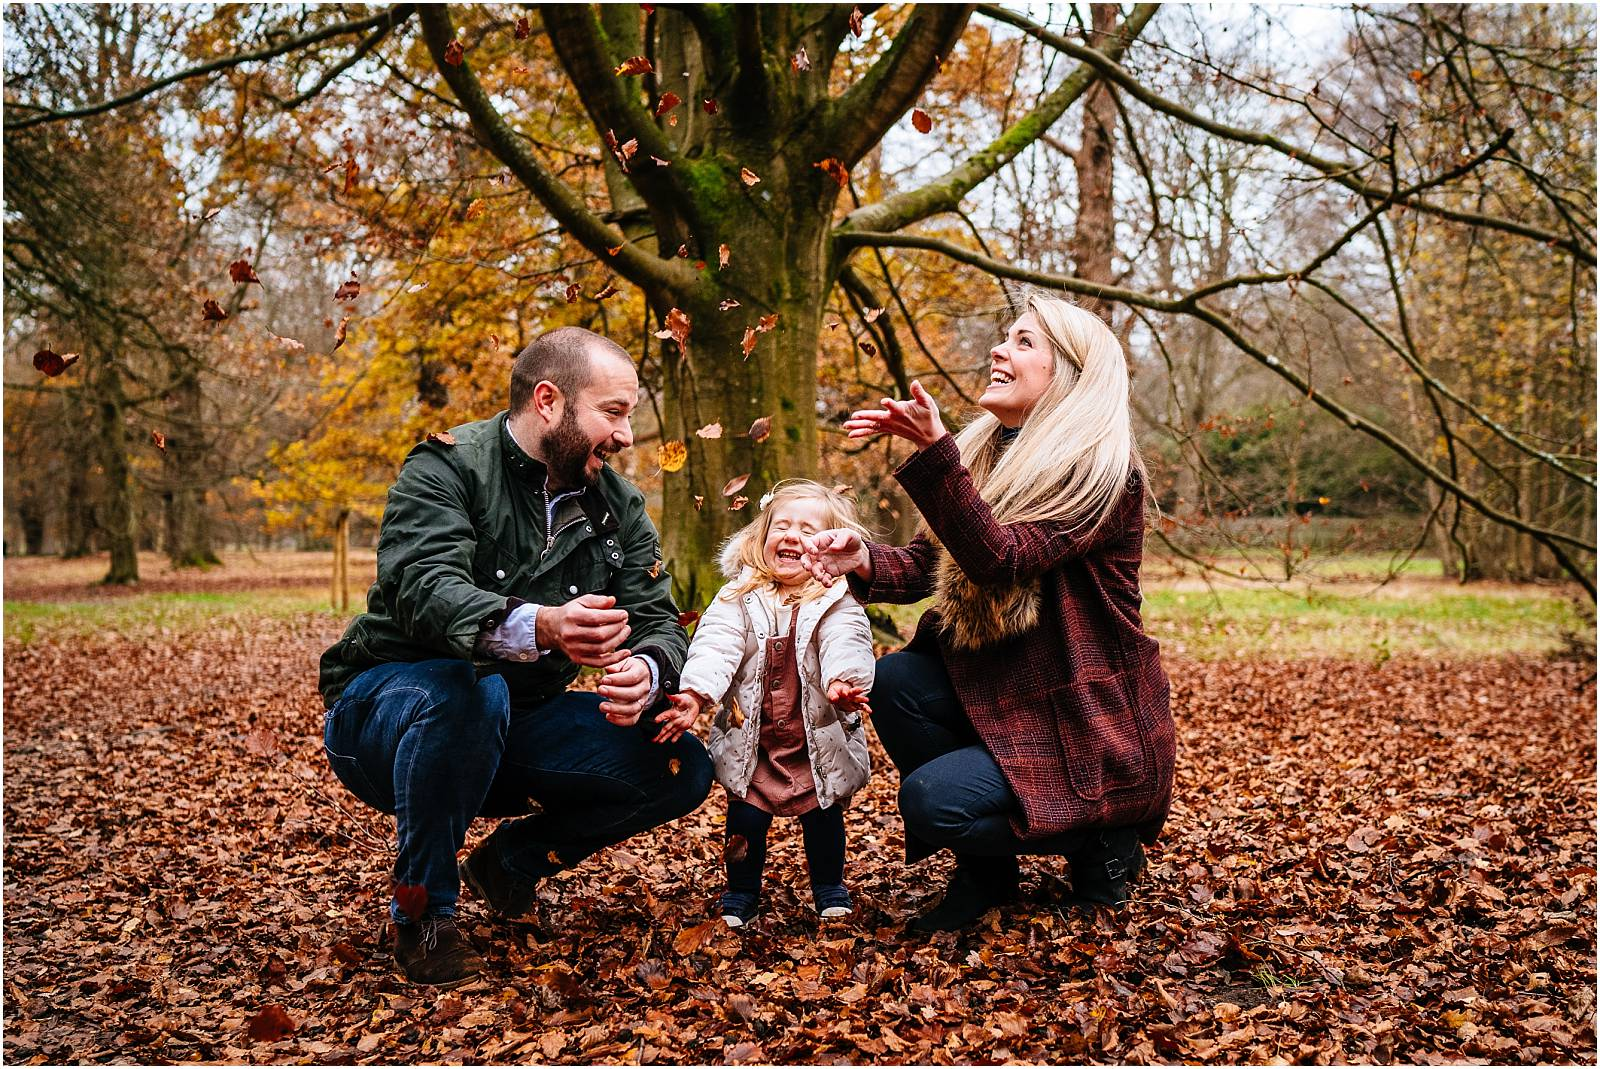 Windsor Family Photographer – Poppy and the autumn leaves